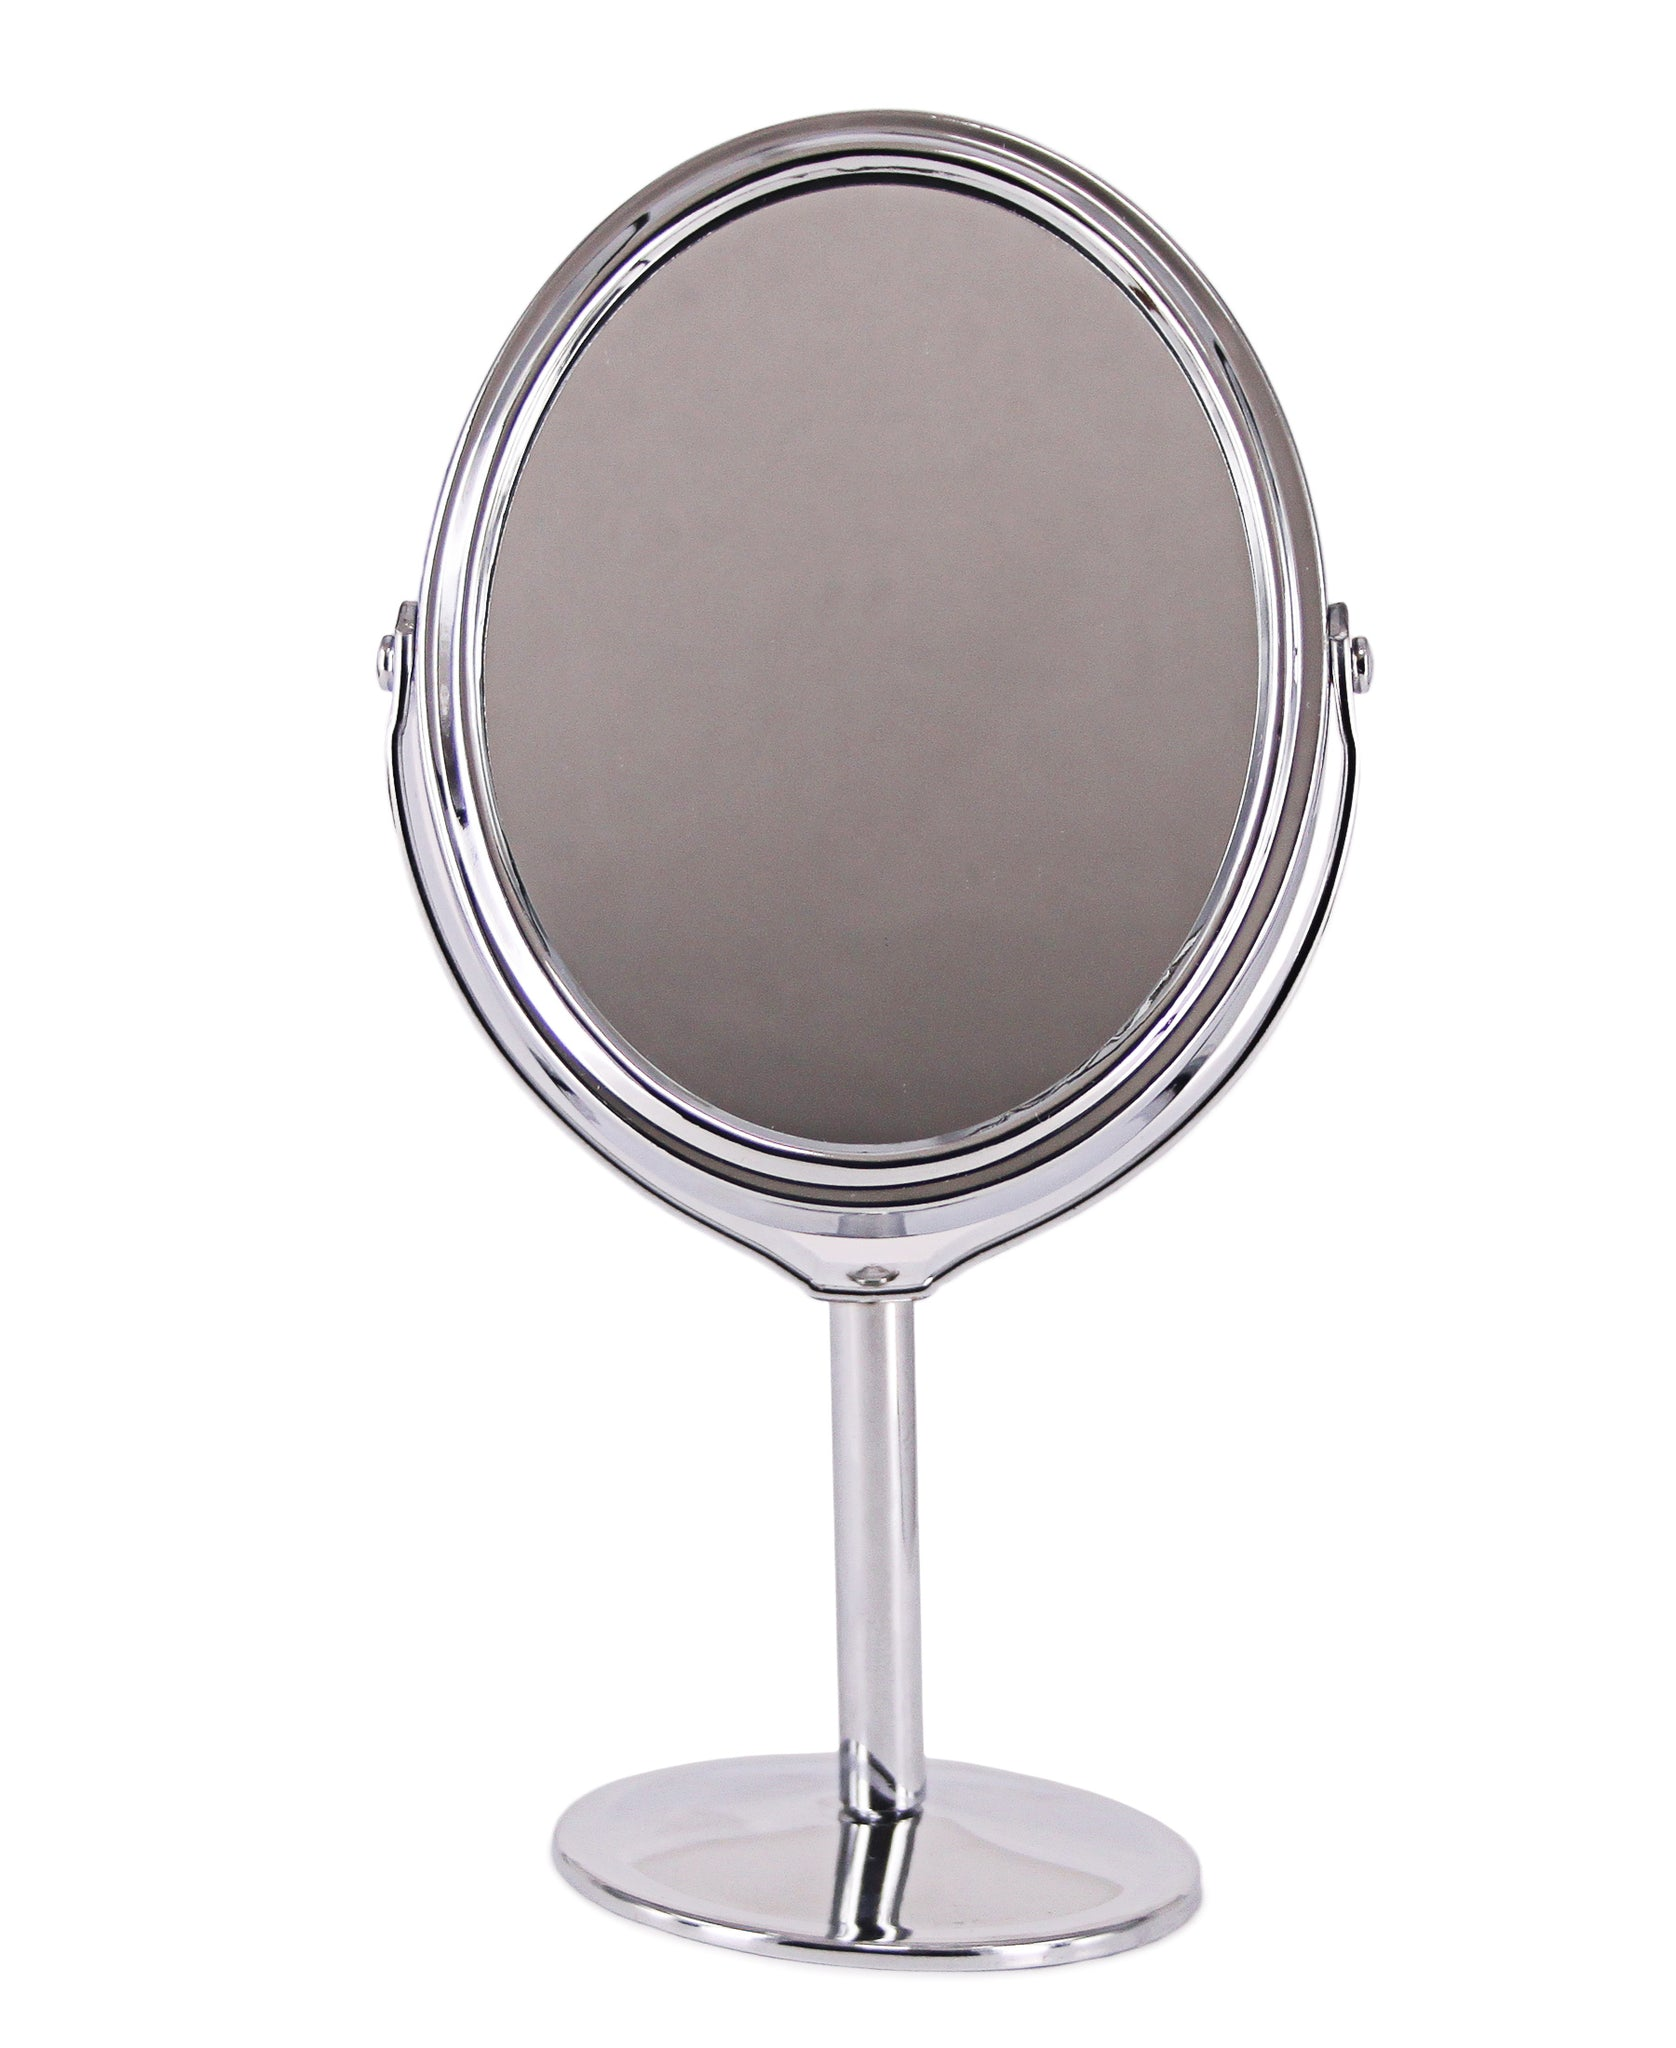 Two Sided Standing Mirror - Silver